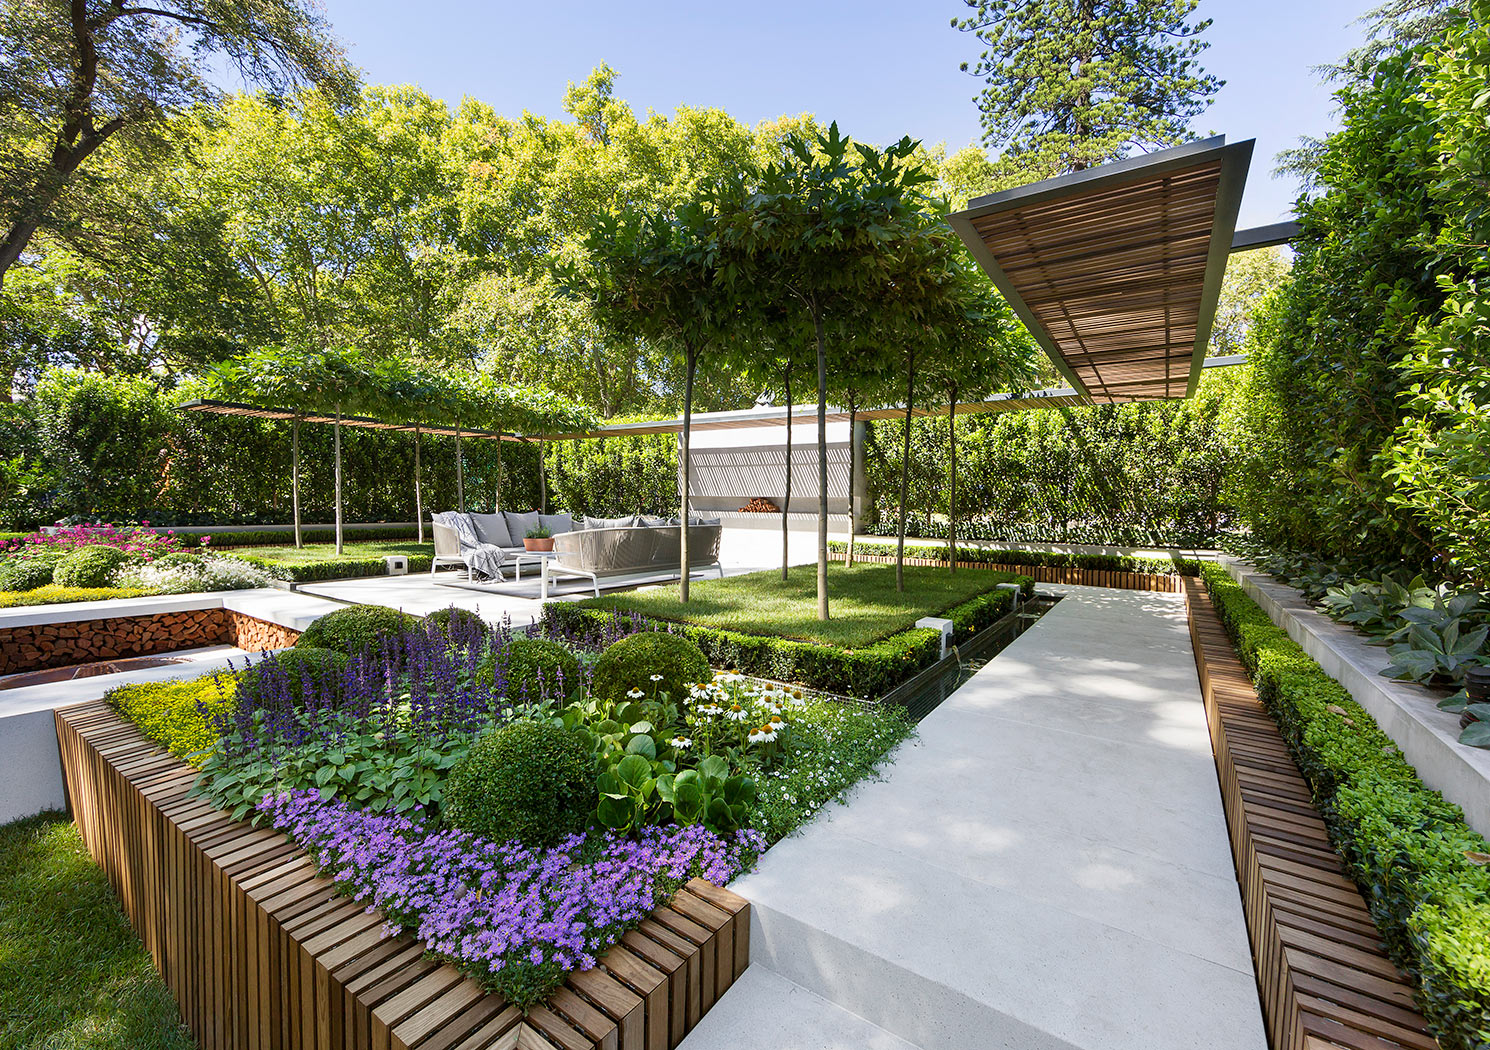 Landscape garden designer melbourne nathan burkett design for Landscape design pictures